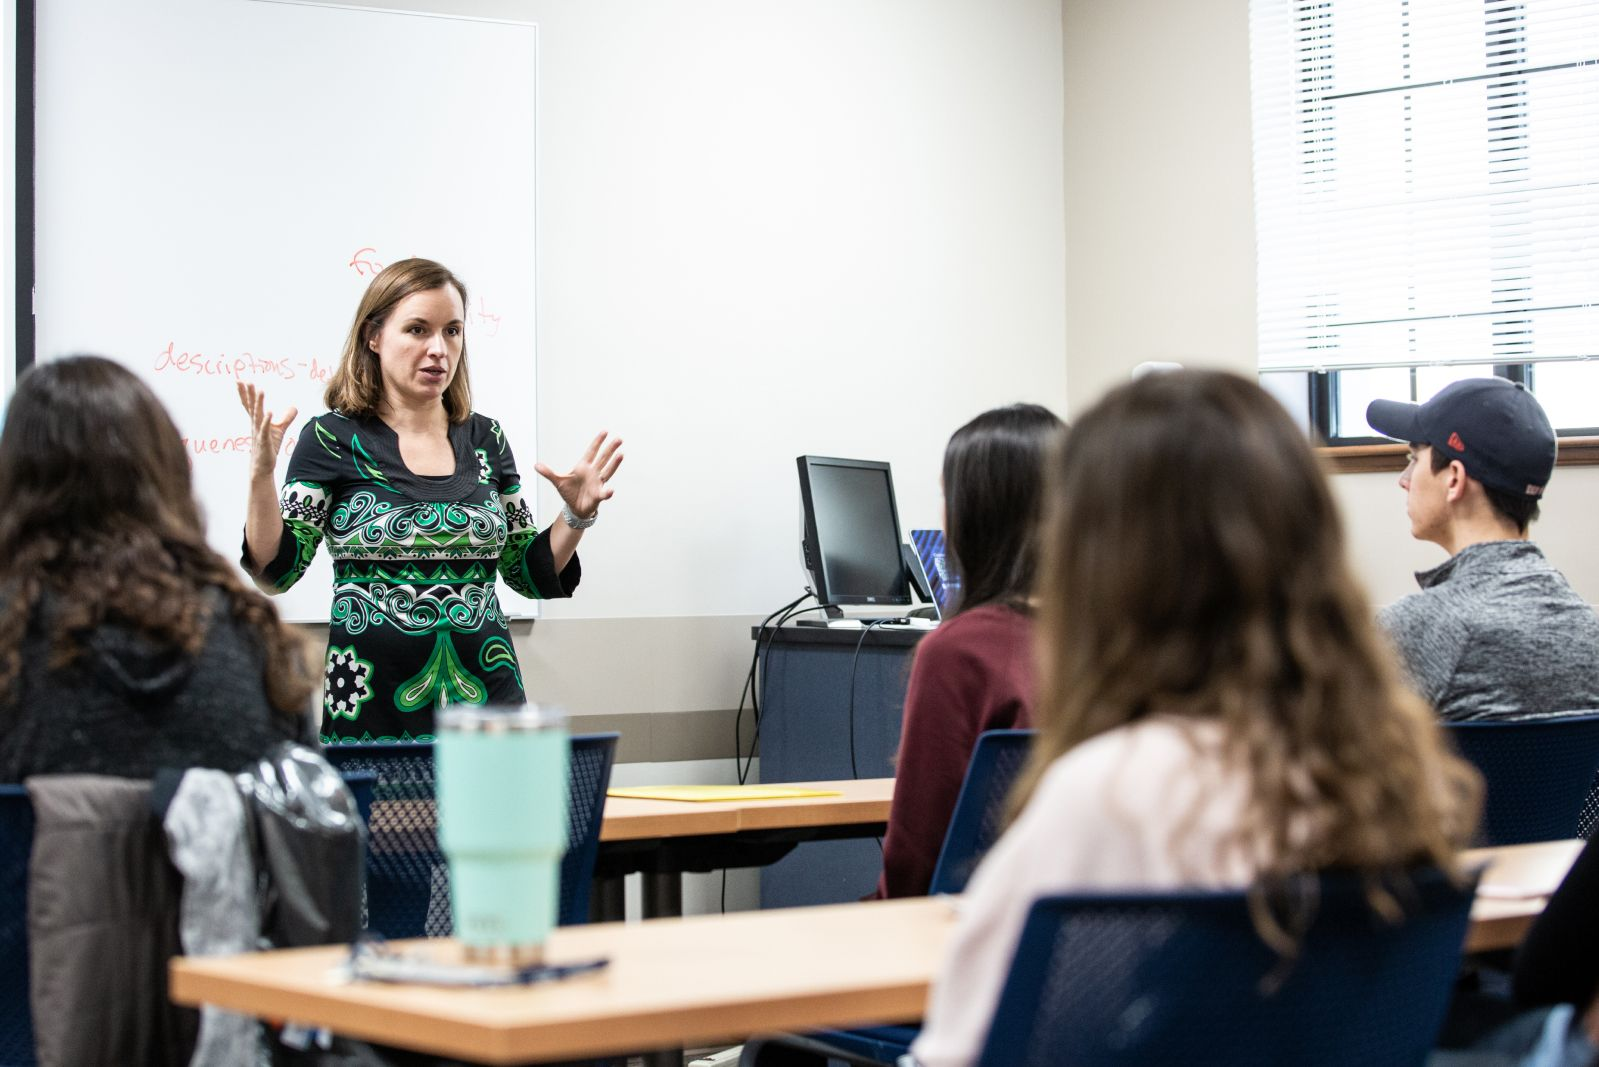 Anthropology professor Rachel Newcomb lectures students.